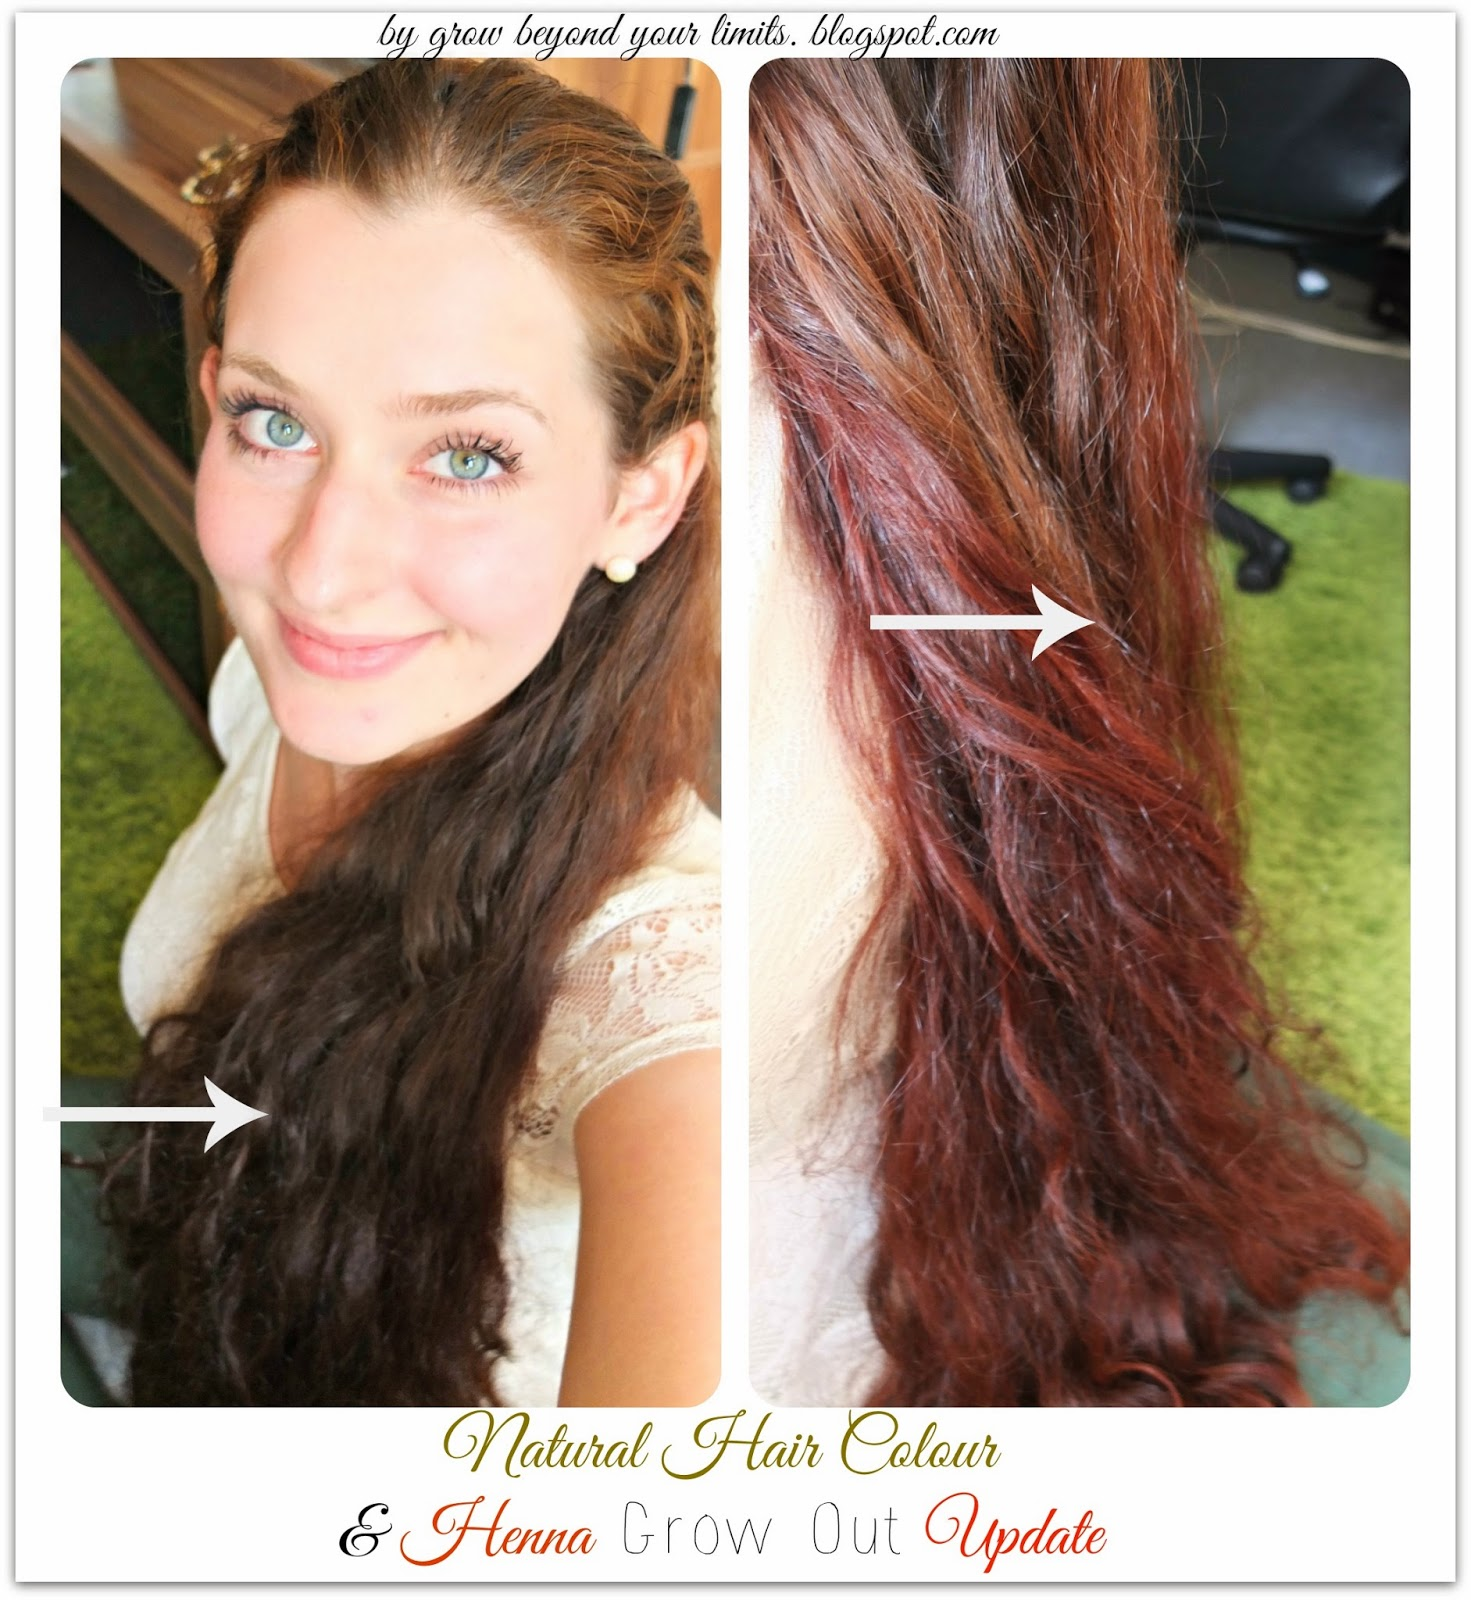 Grow Beyond Your Limits Natural Hair Colour Update Growing Out